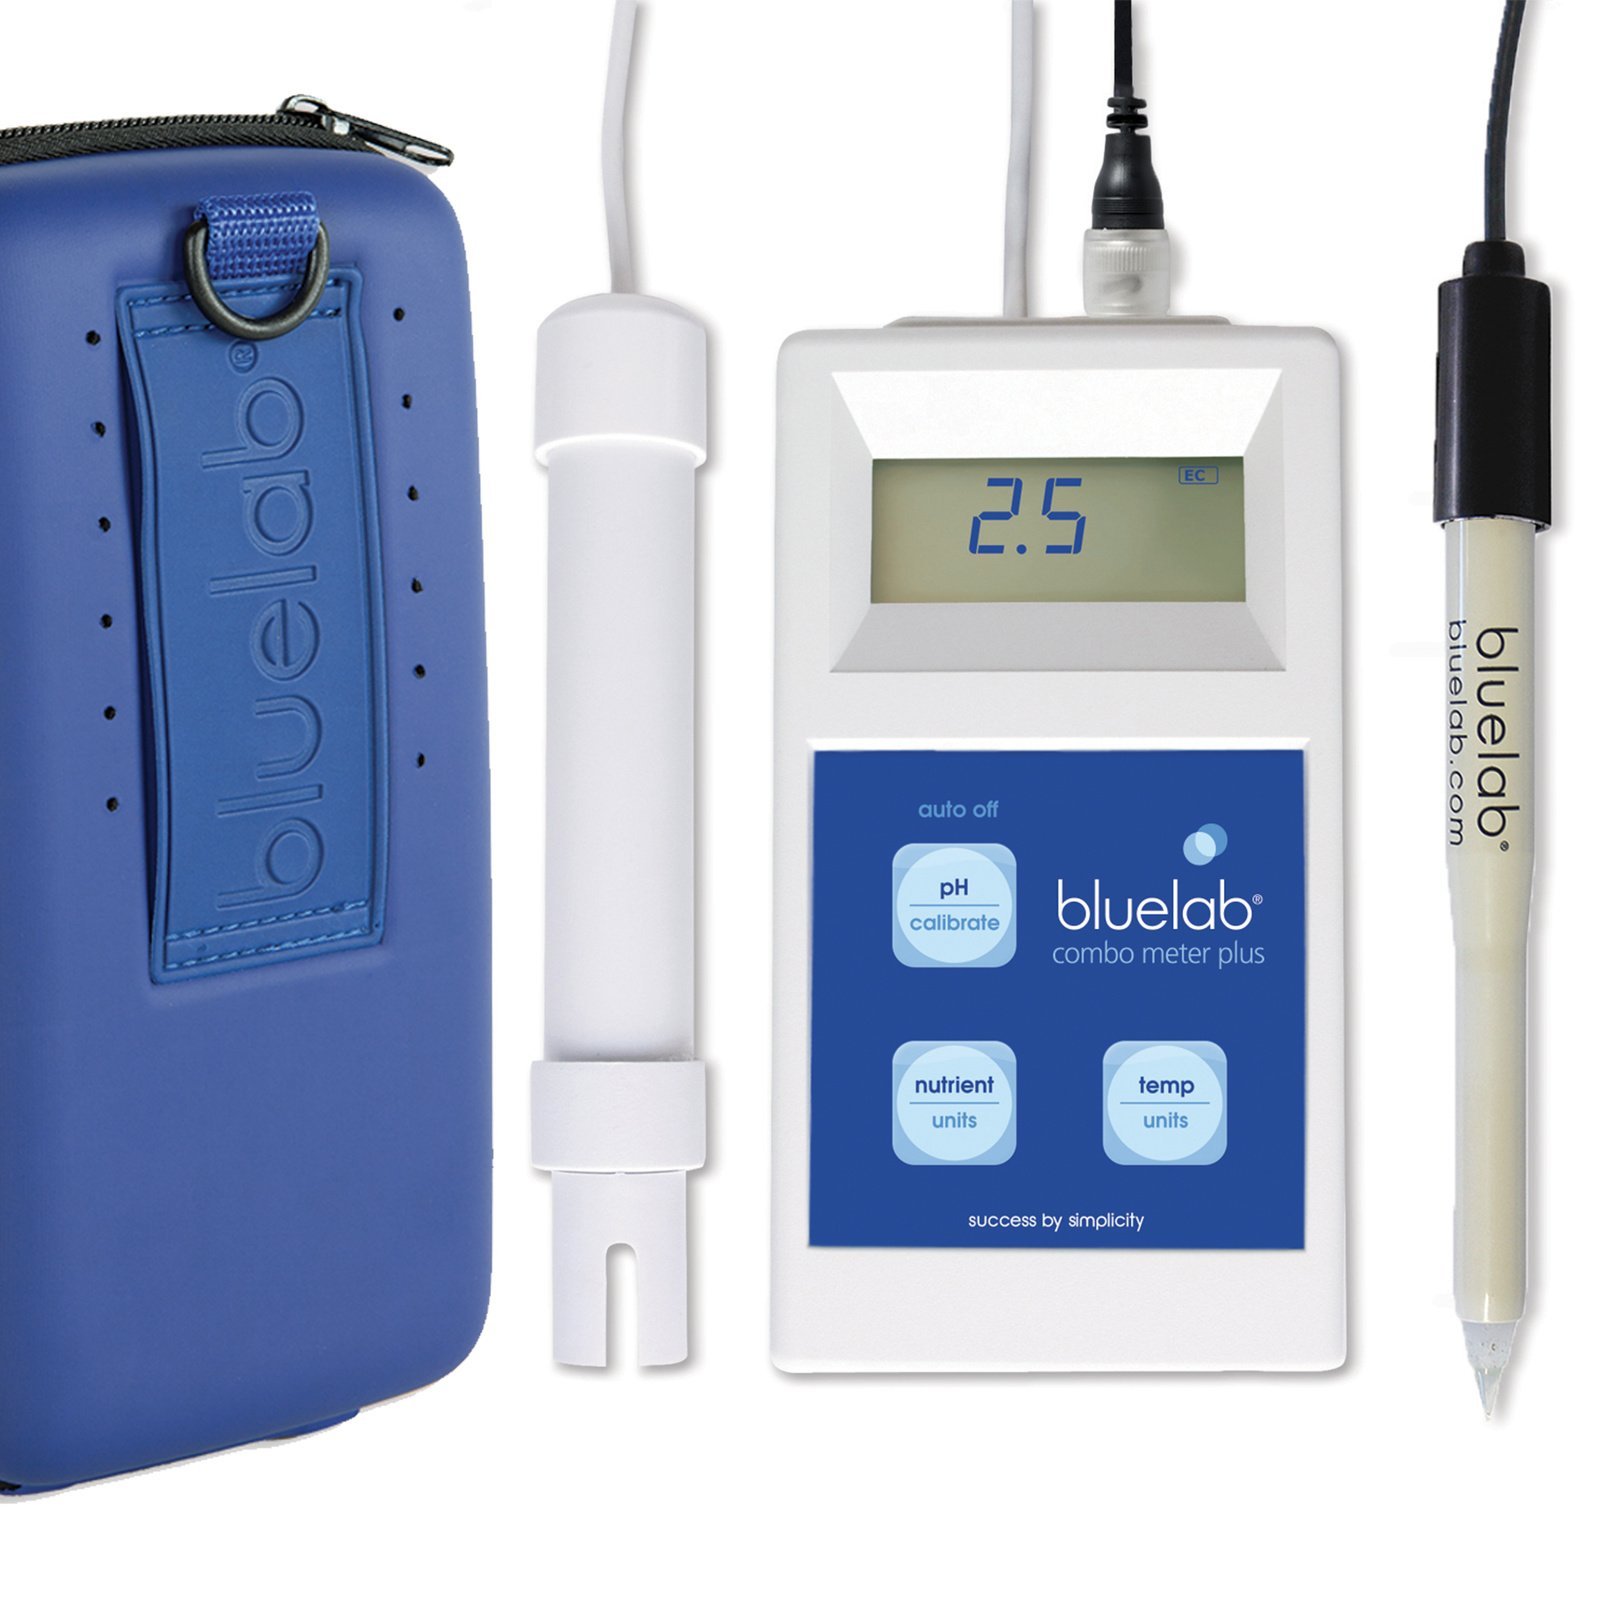 Bluelab Combo Meter Plus - Handheld Digital Hydroponic Nutrient and pH Meter for Measuring pH Levels, Conductivity & Temperature in Soil & Plants - Accurate pH Measurements - Bonus Carry Case Included by Bluelab (Image #1)